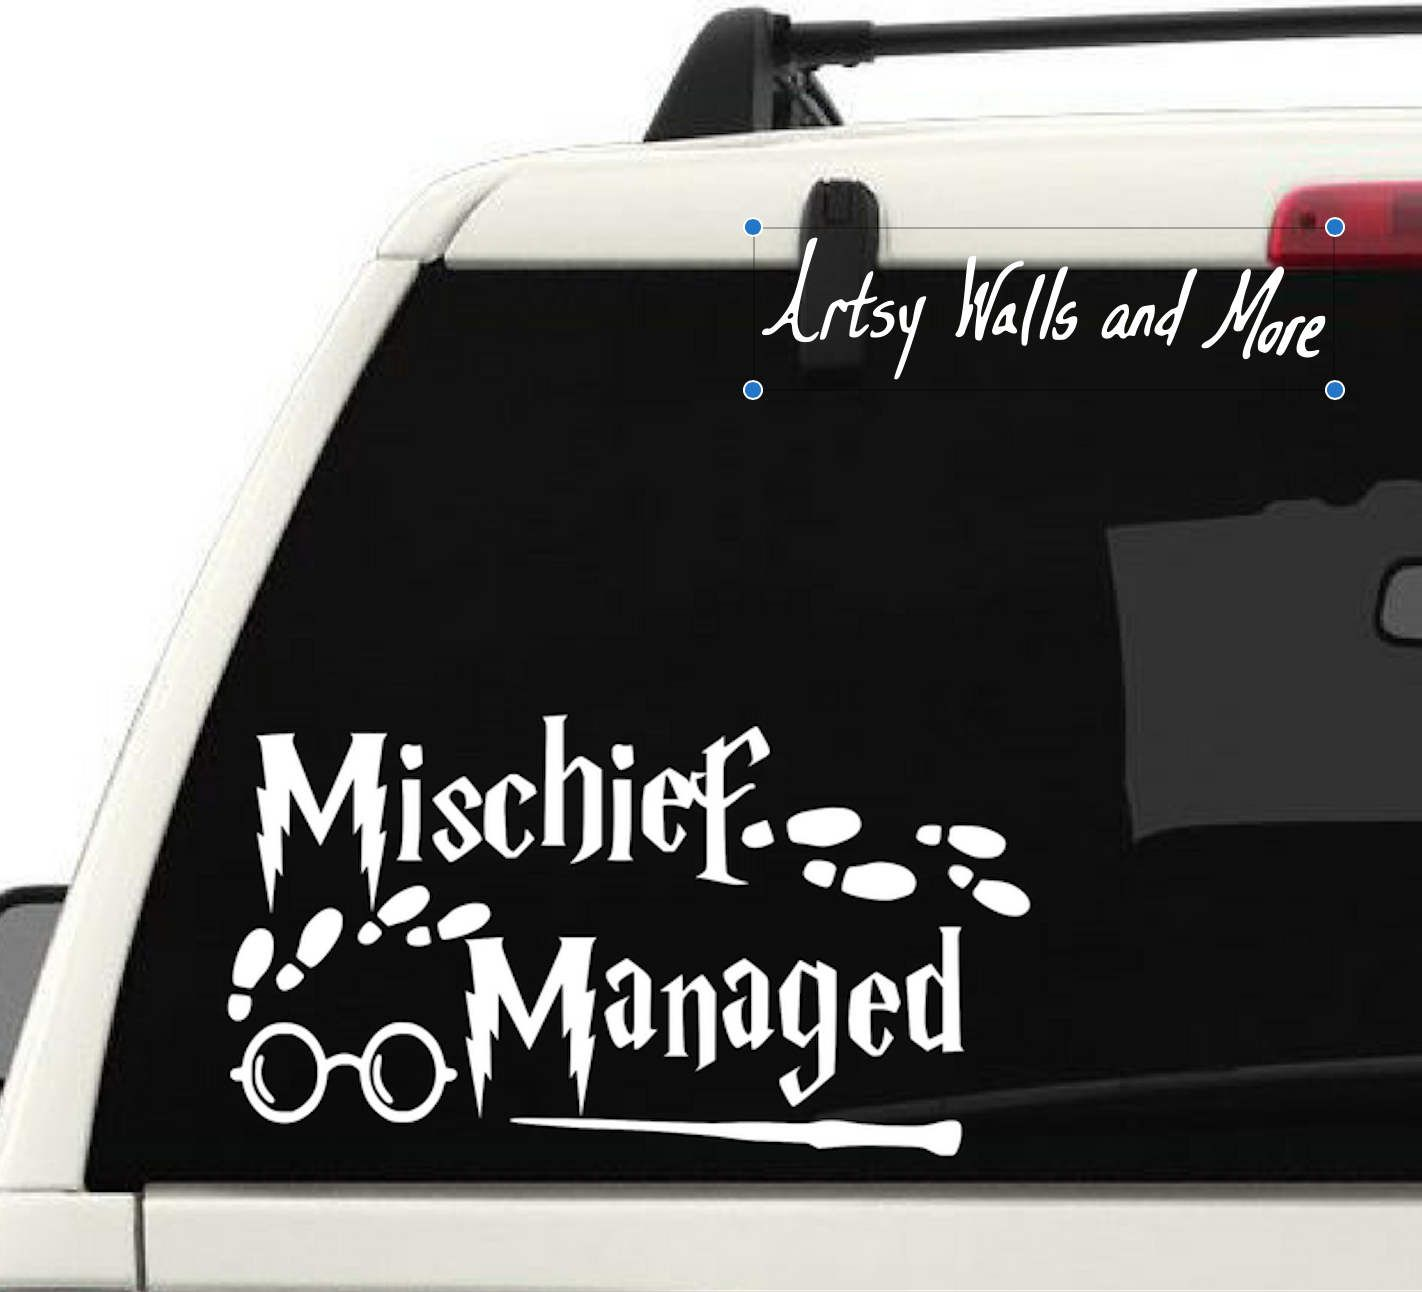 Mischief Managed Harry Potter Car Vinyl Decal Sticker Quote Albus Dumbledore Harry Potter Wall Deca Harry Potter Car Car Decals Vinyl Harry Potter Wall Decals [ 1292 x 1422 Pixel ]